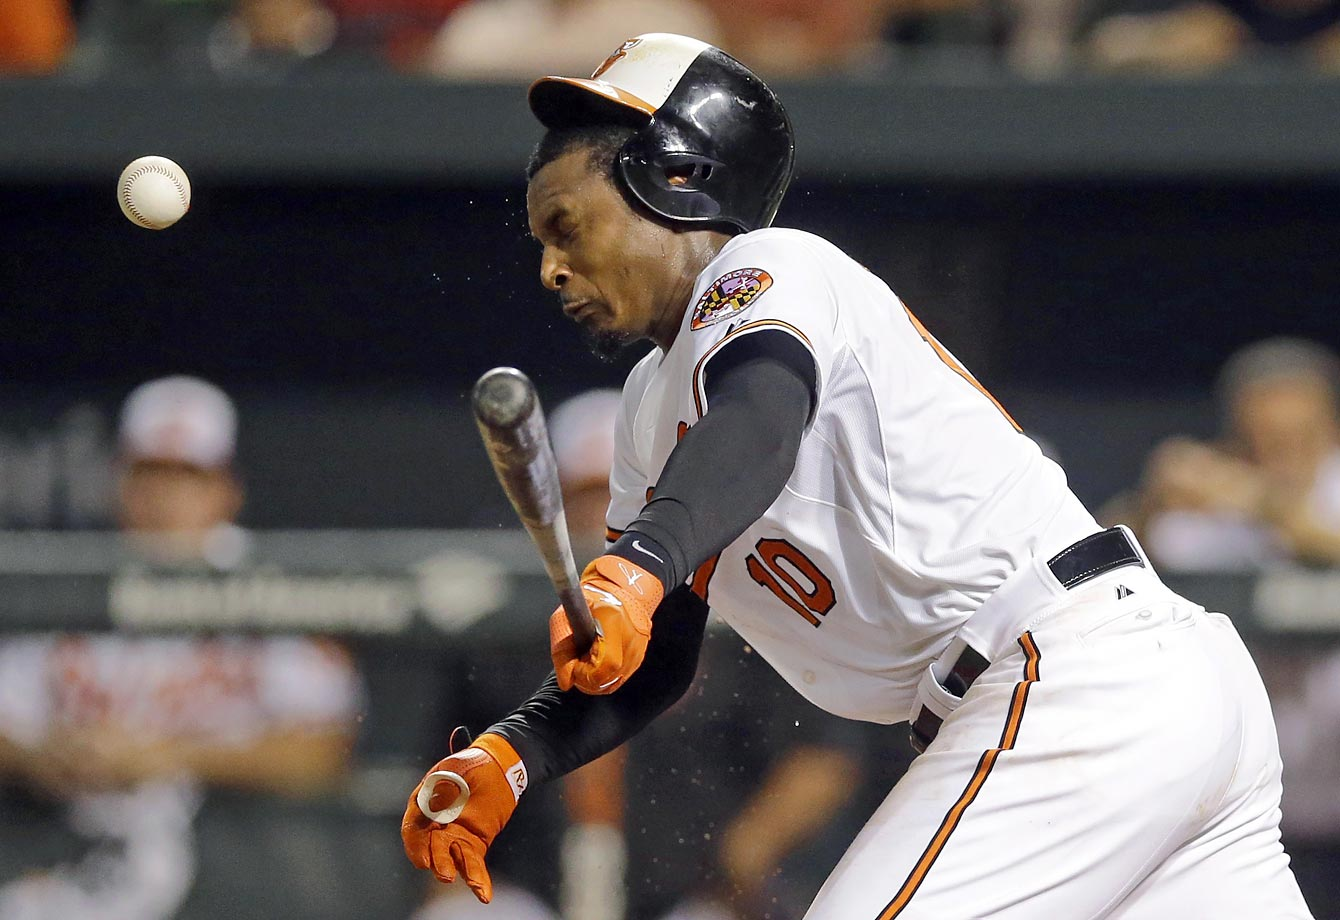 Adam Jones of the Baltimore Orioles fouls a ball off his head during a game against the Atlanta Braves.